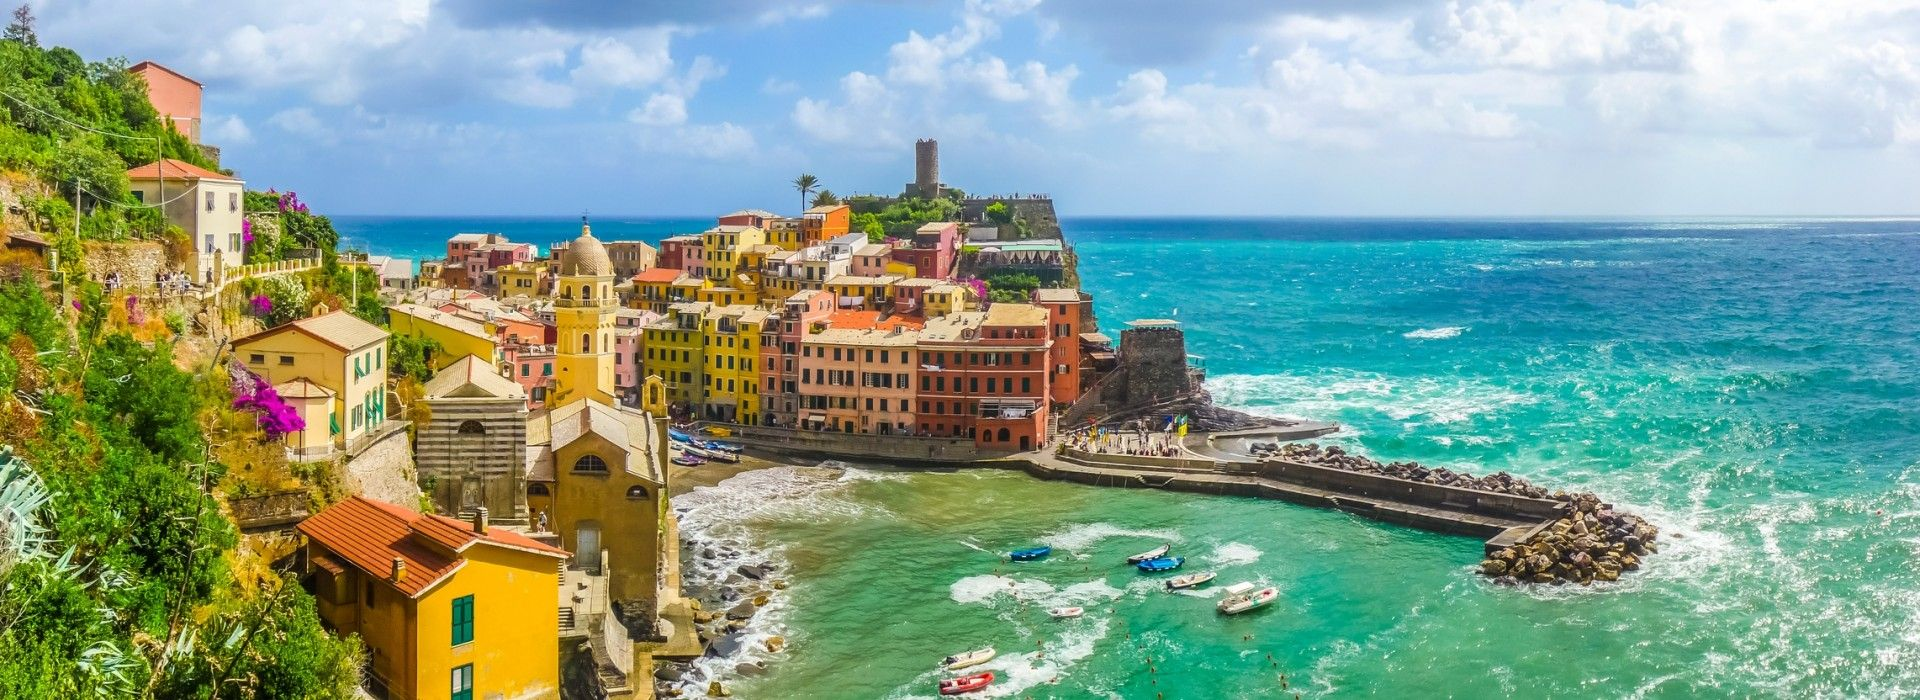 Sightseeing, attractions, culture and history Tours in Italy